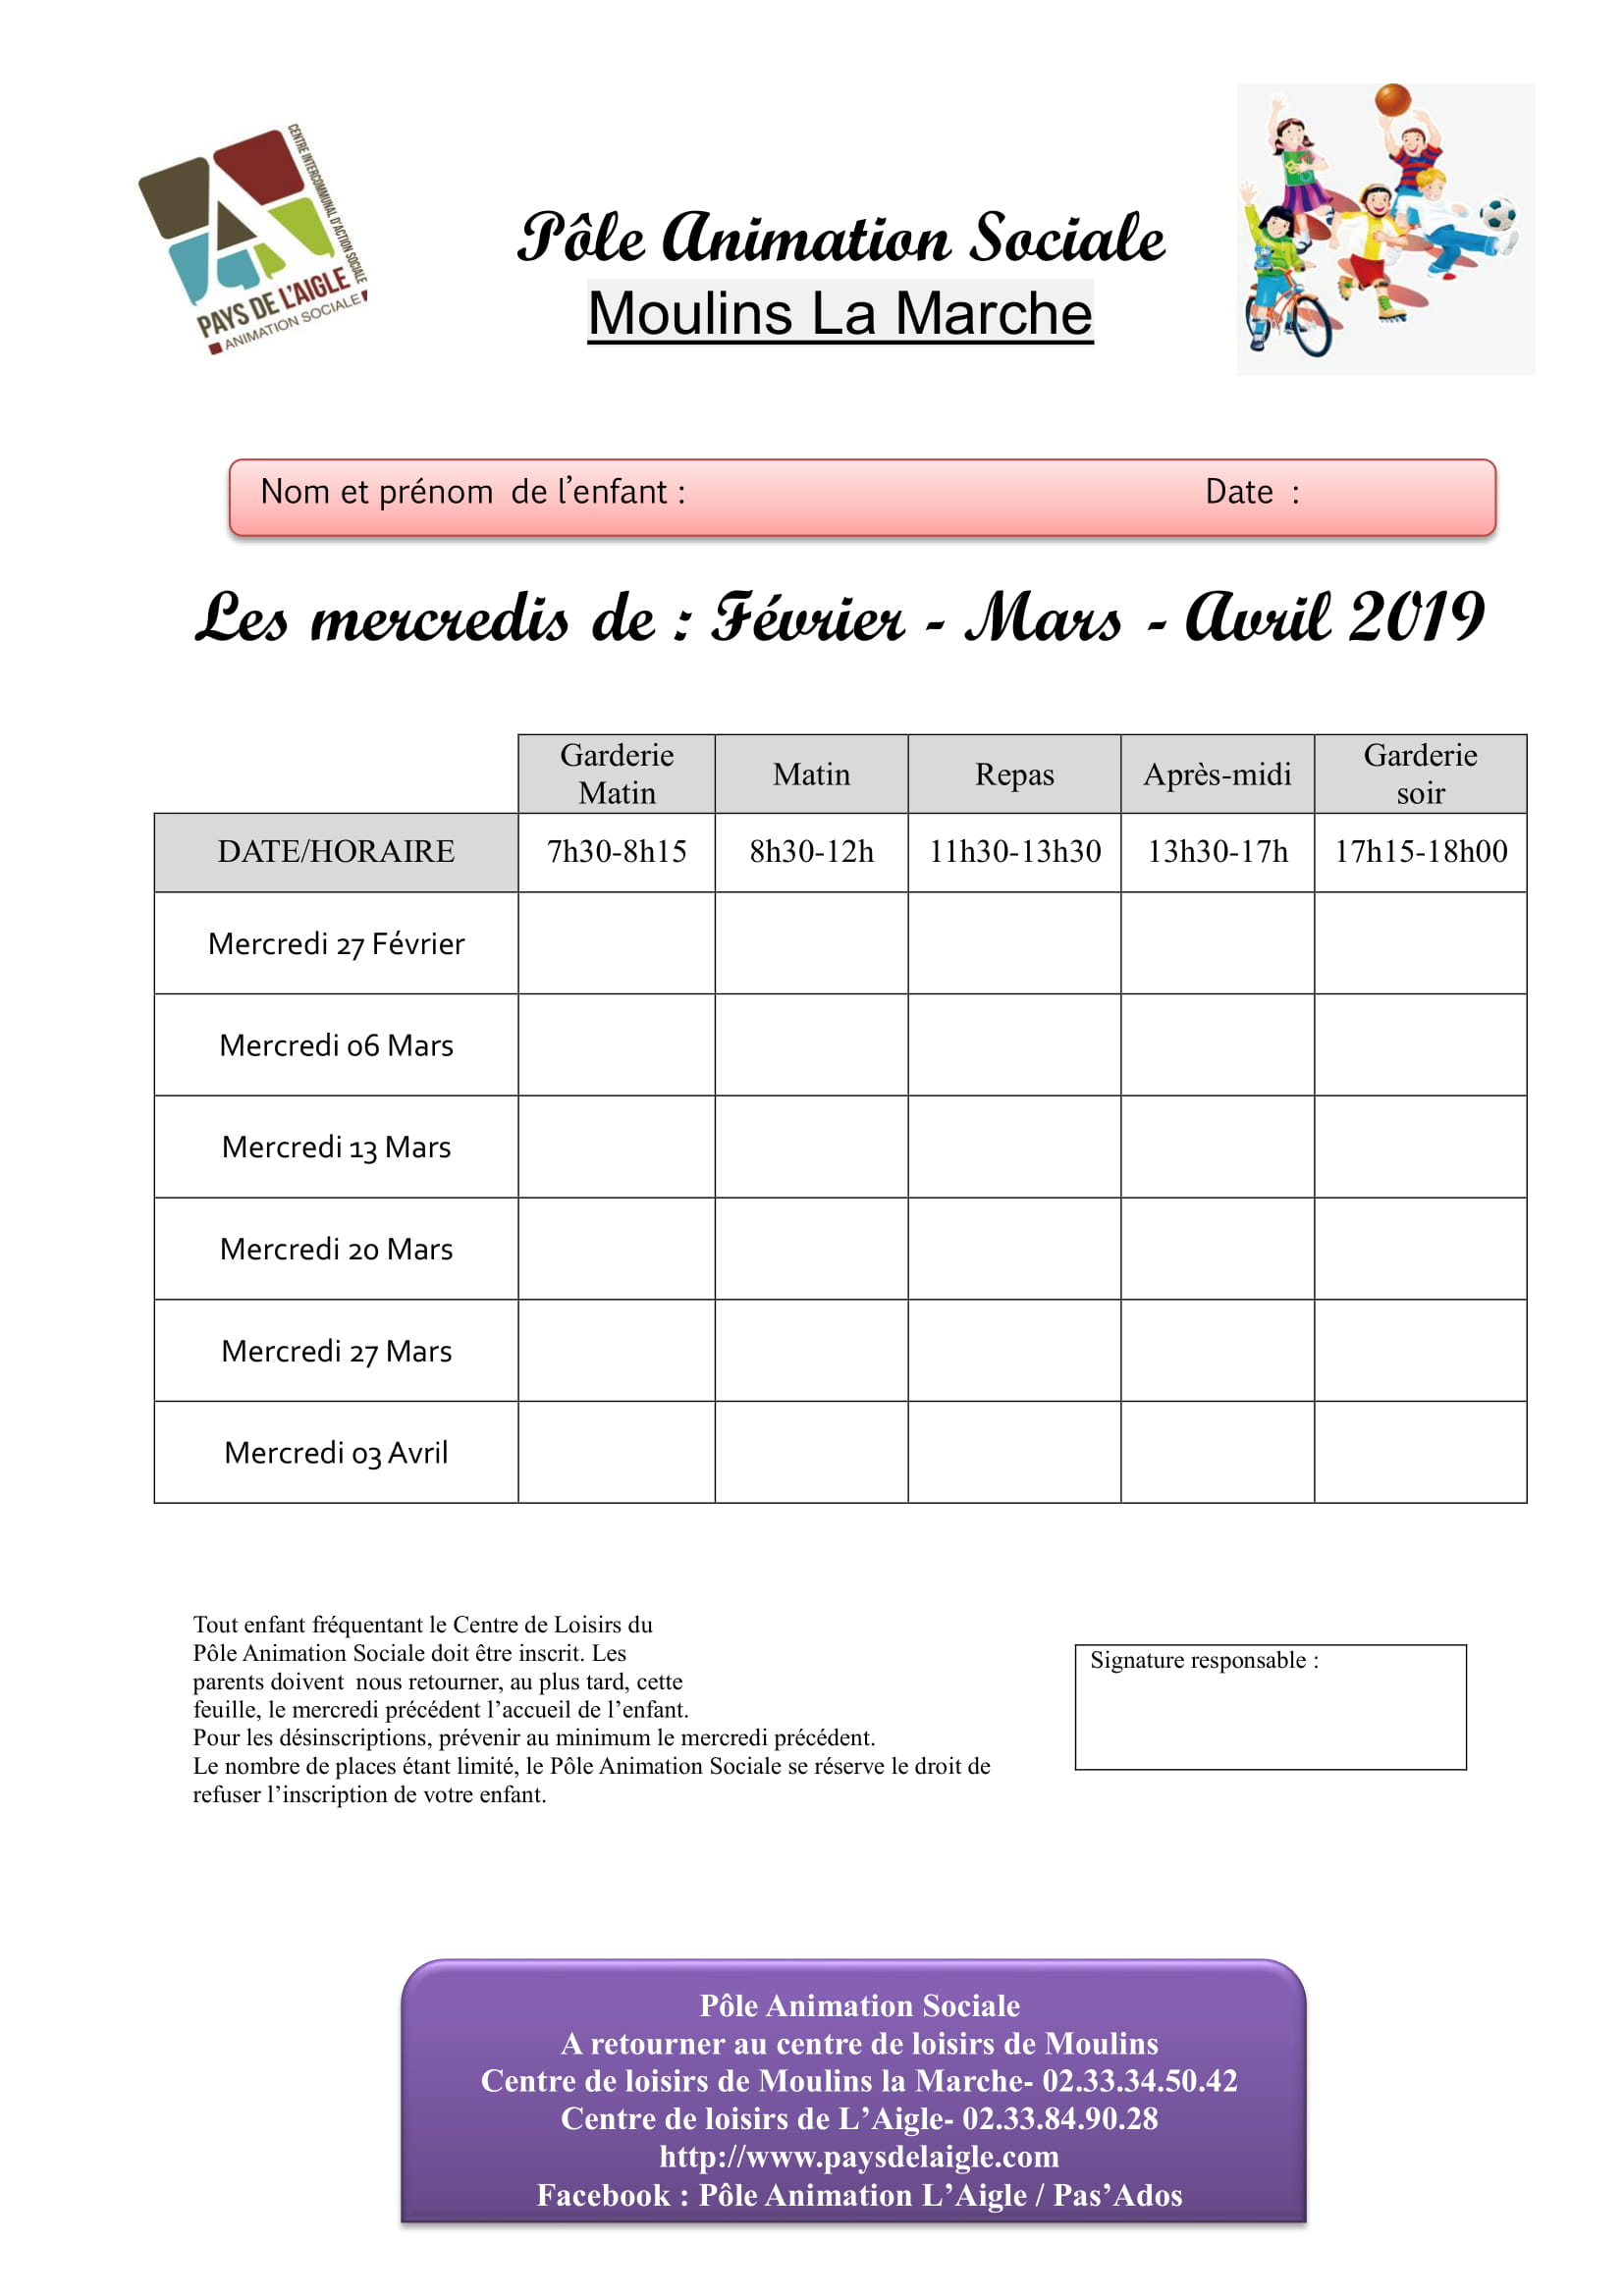 Feuille dinscription moulins mercredi fevrier mars avril 2019 1